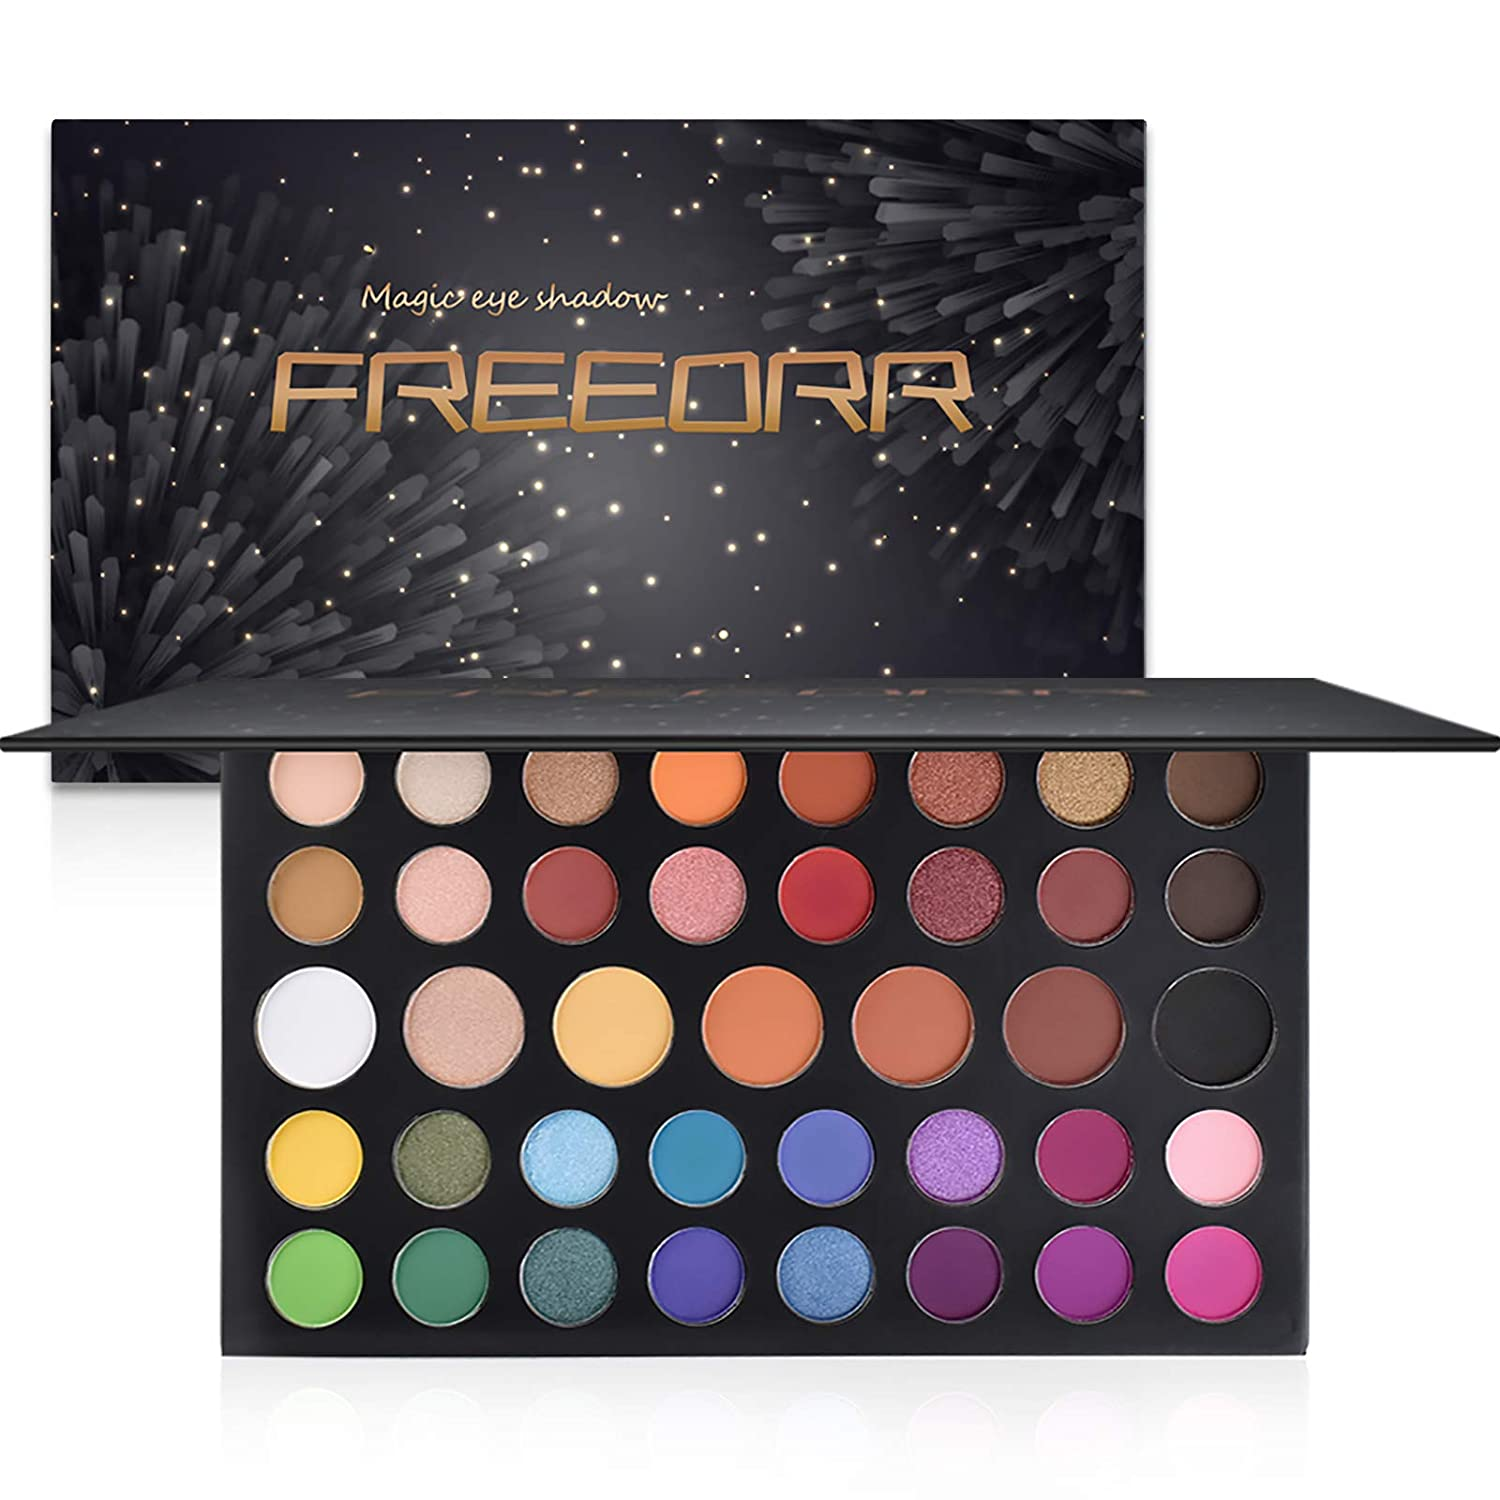 Ownest 39 Limited time trial Free shipping anywhere in the nation price Colors Eyeshadow Palette Matte Pop Shimmer Metallic C